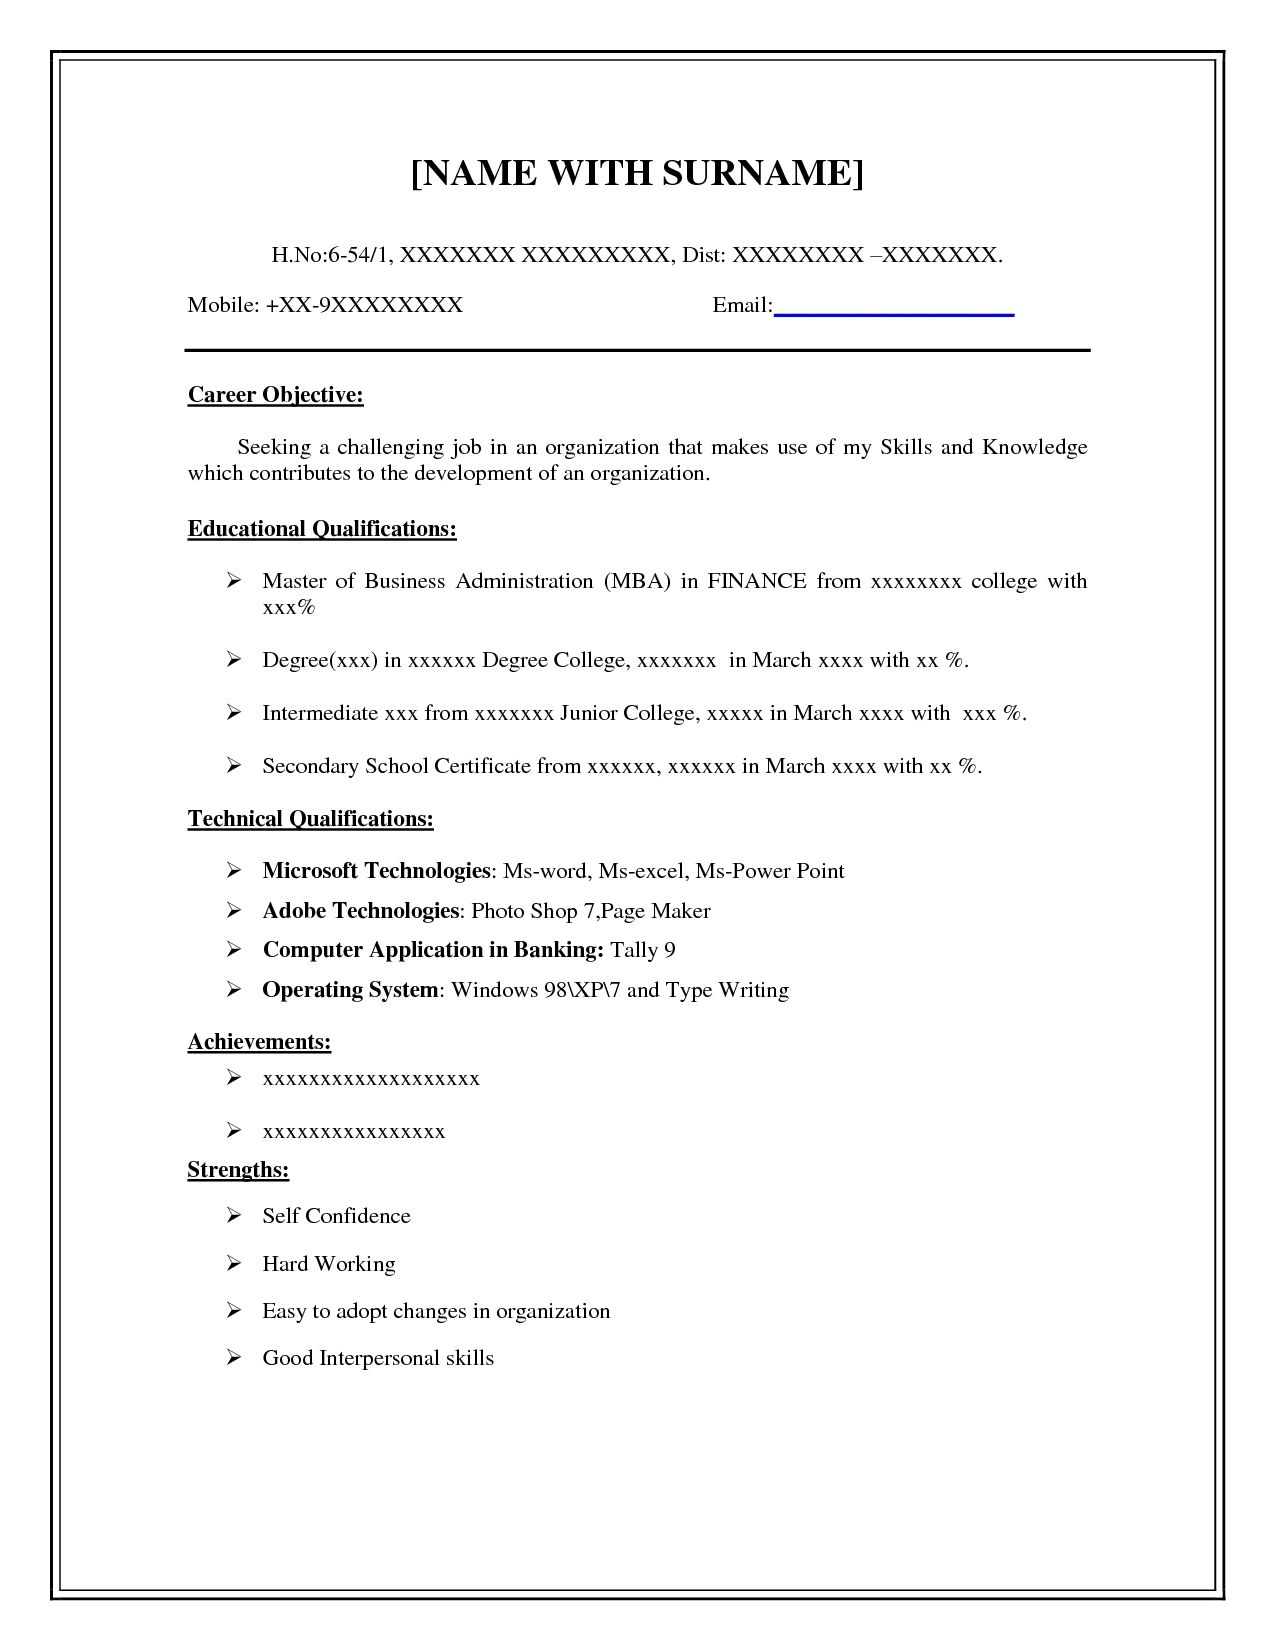 12 Good Samples Of Basic Resume Template Easy Resume